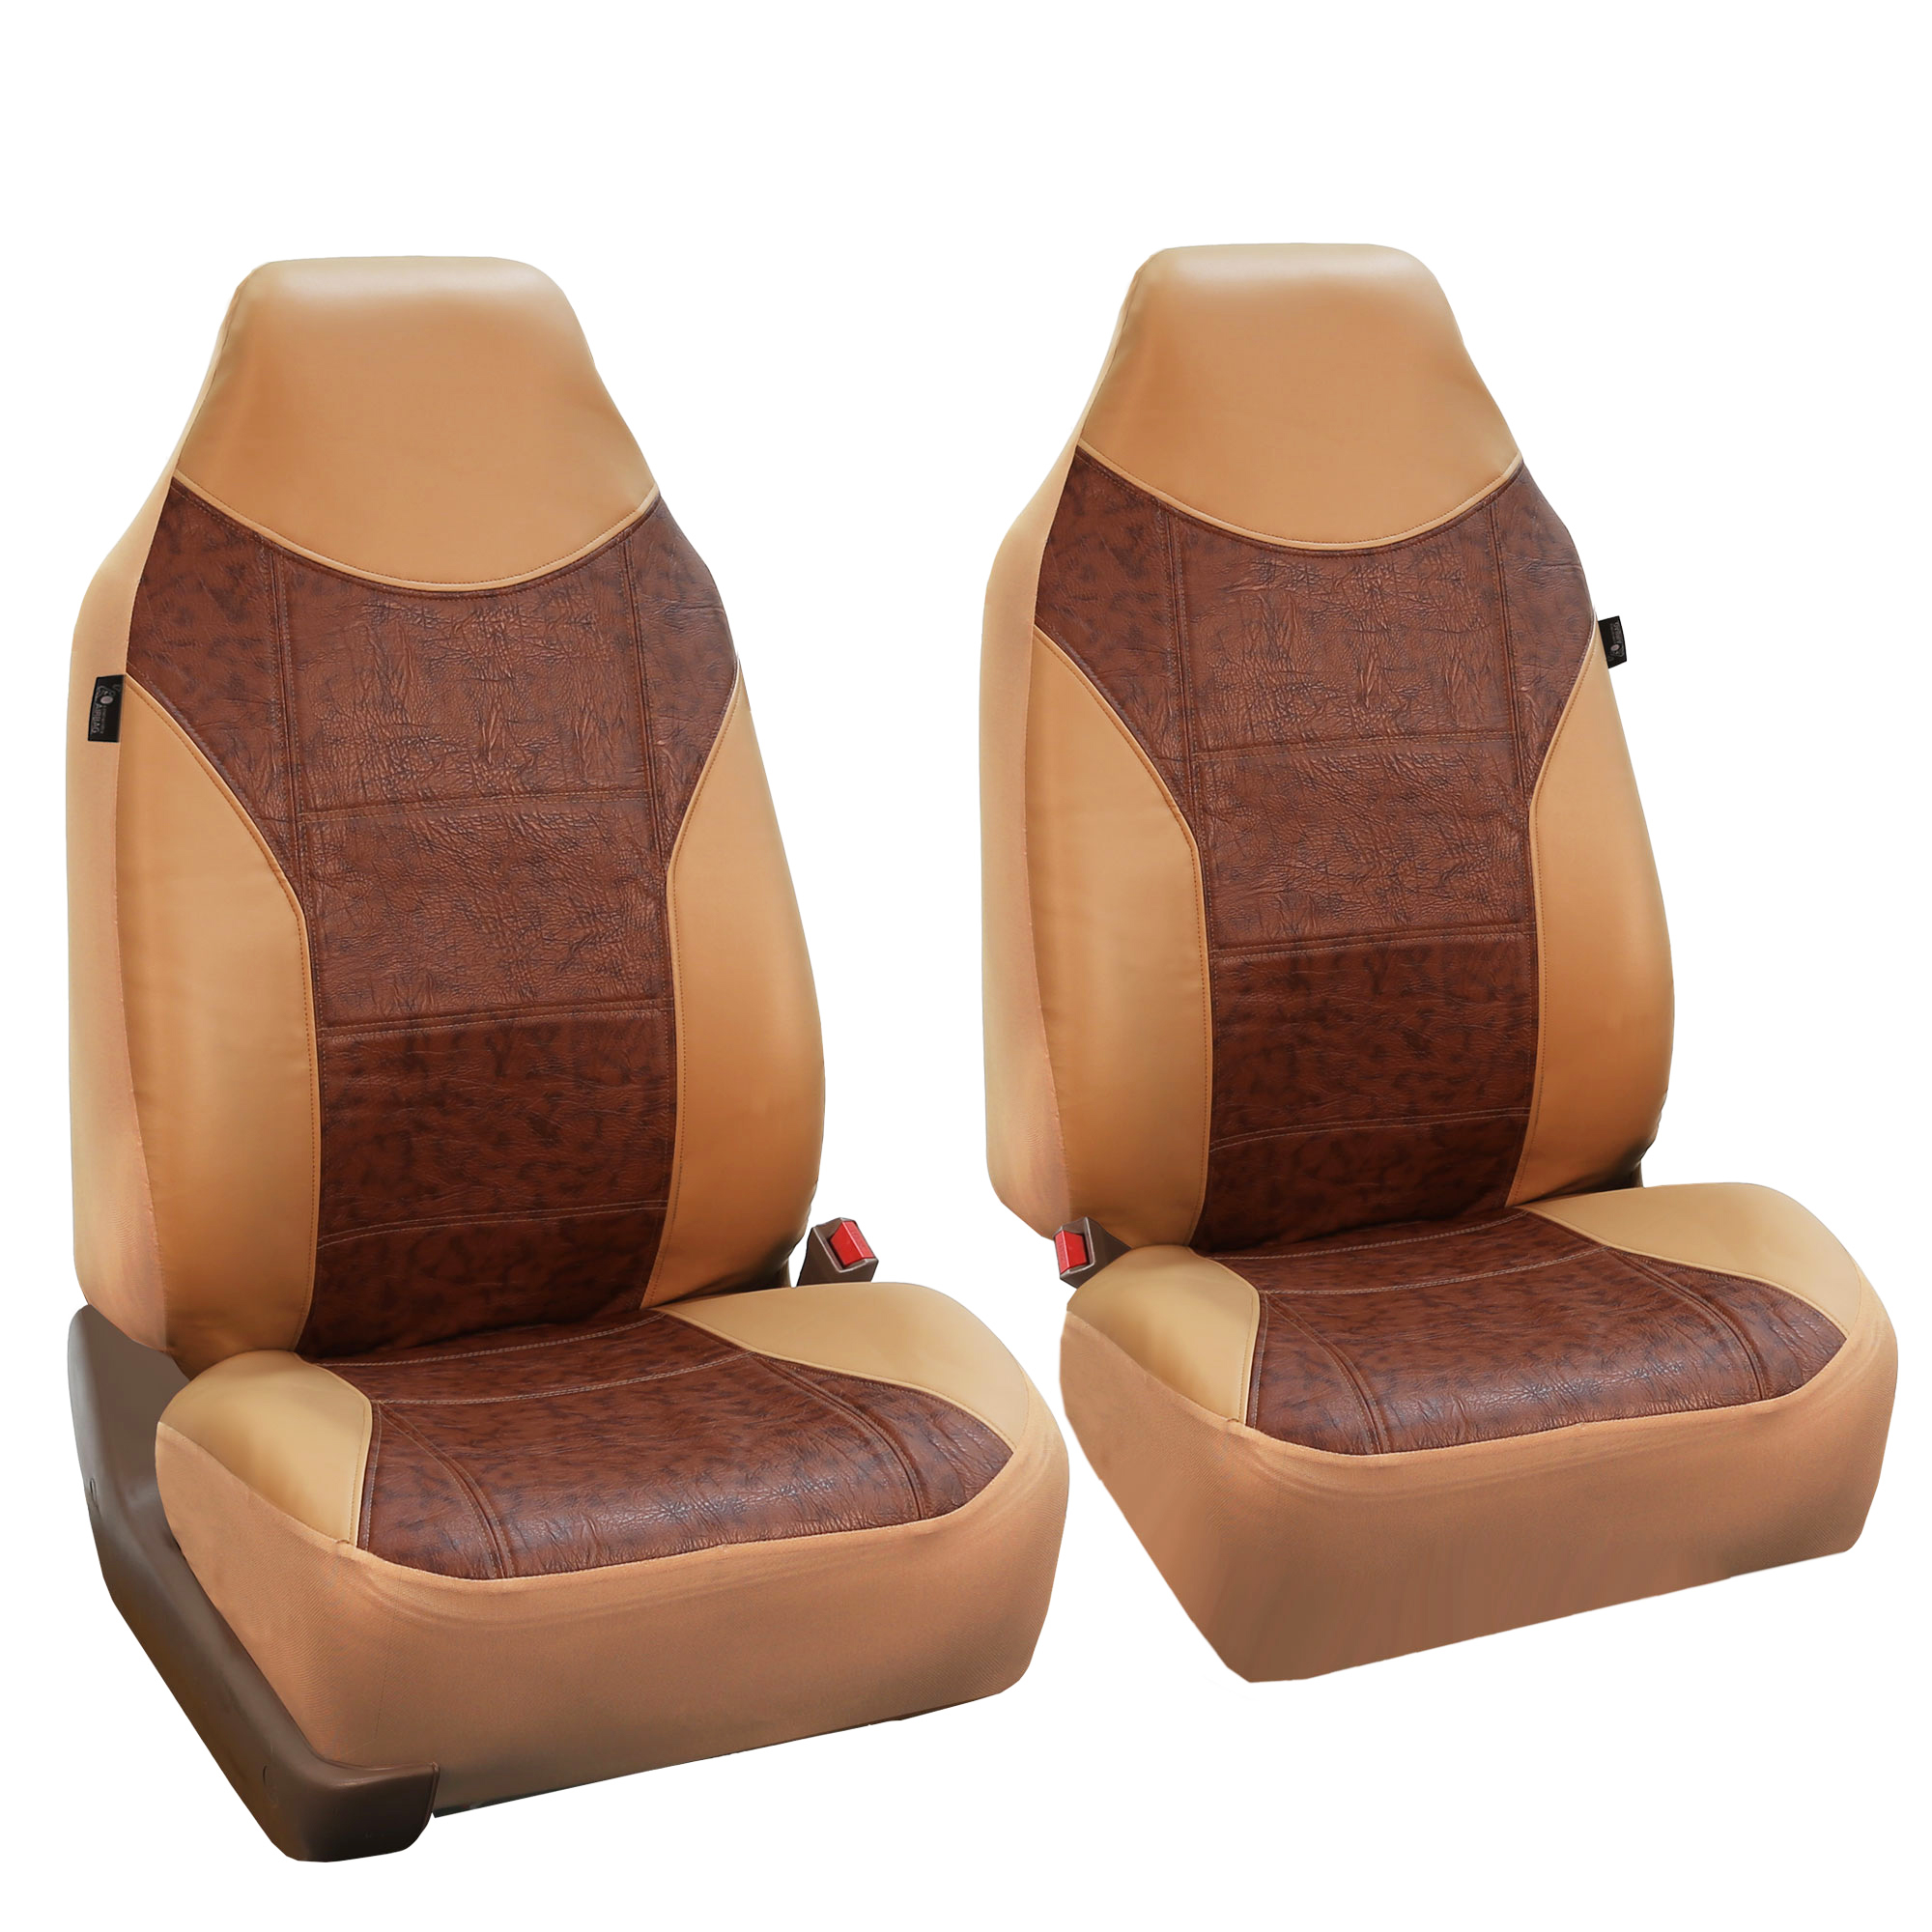 Faux leather car seat covers tan brown top quality for car - Car seat covers for tan interior ...